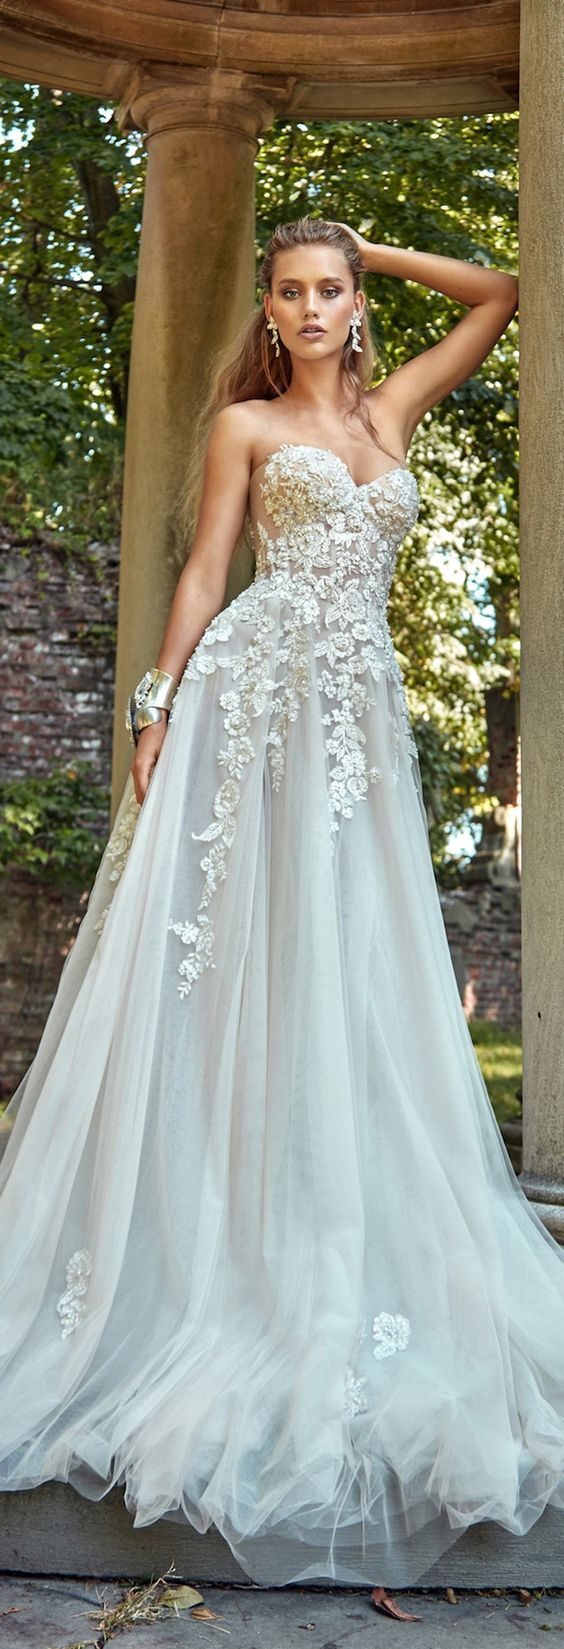 Gorgeous wedding dresses for this year | Pretty Dresses | Pinterest ...